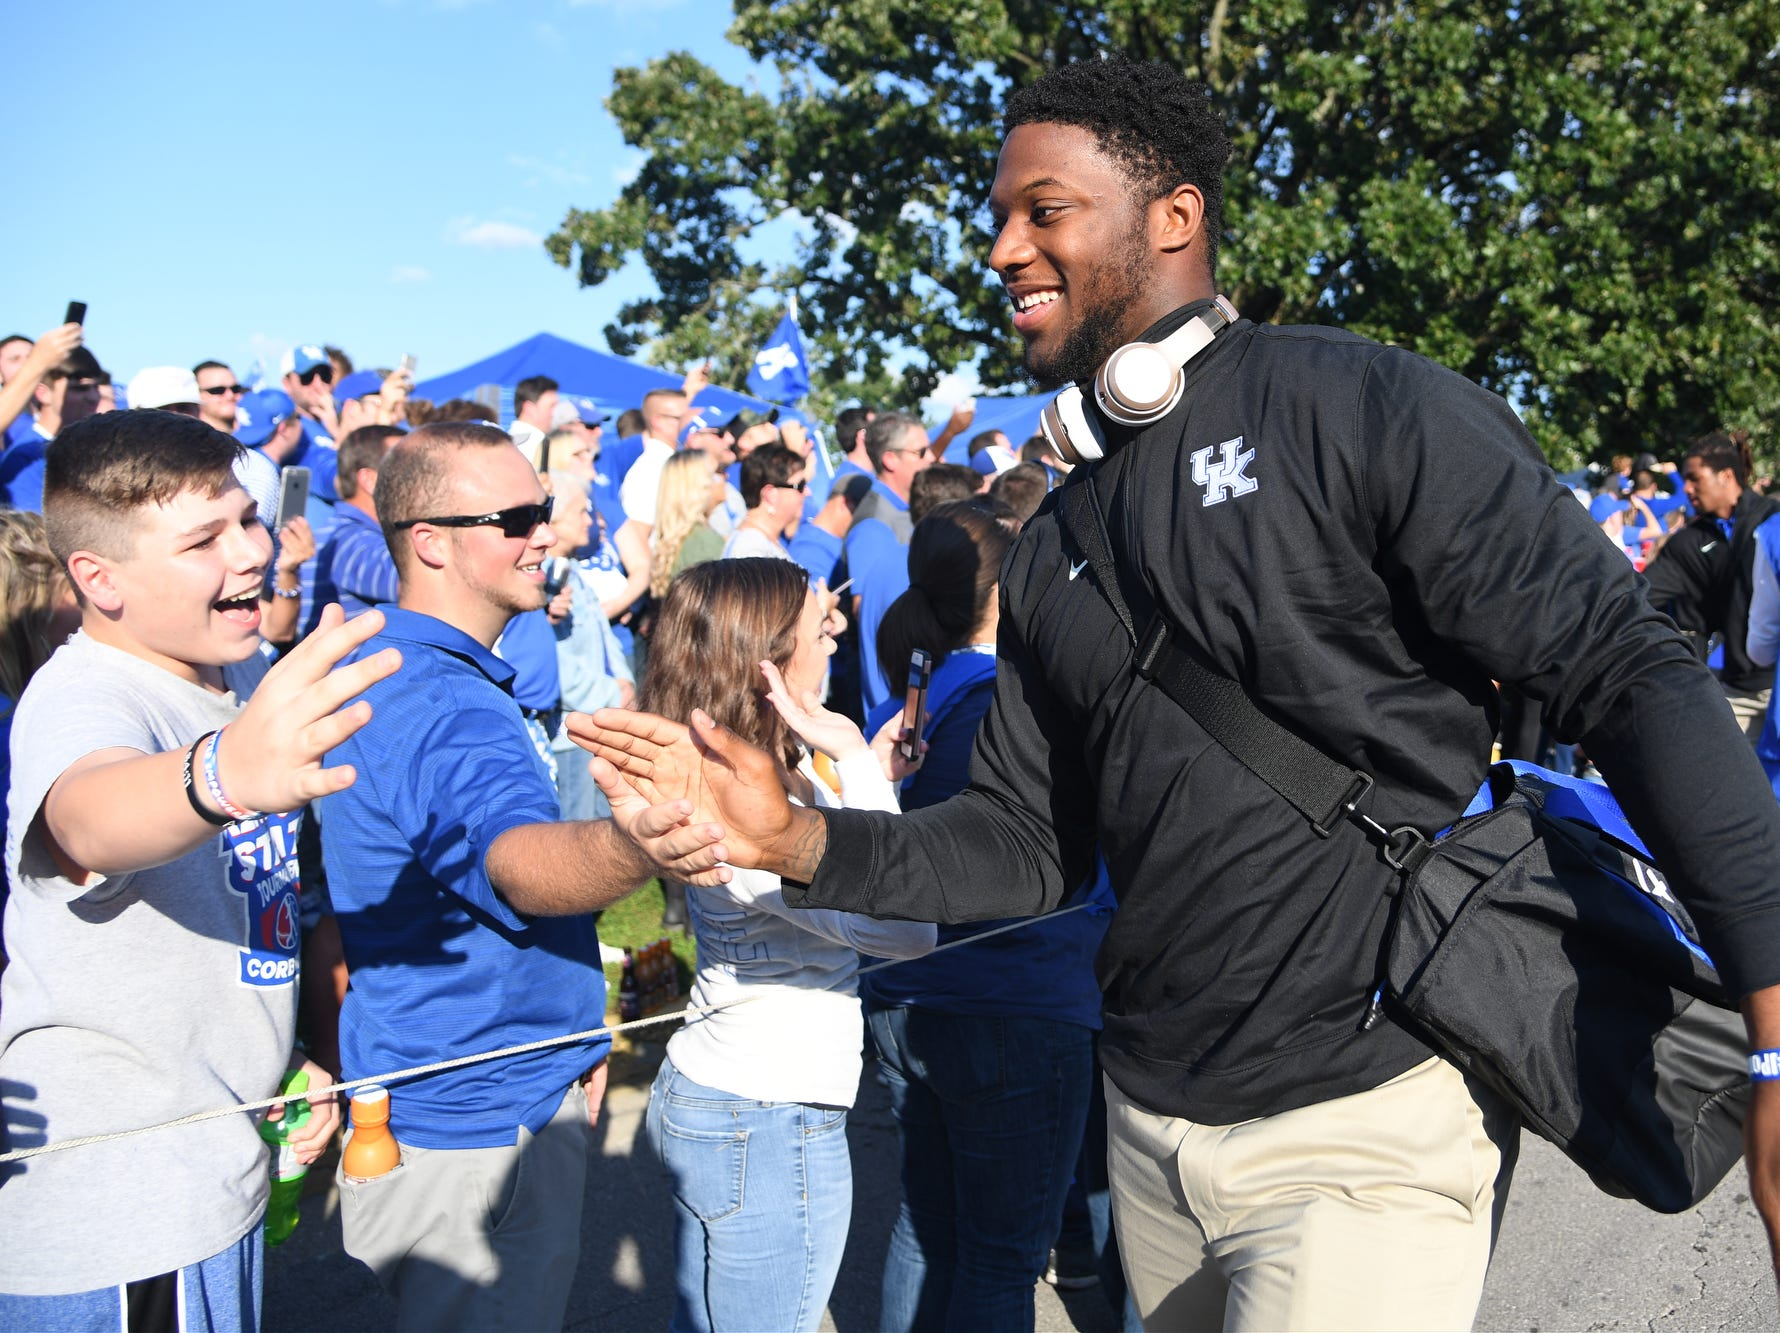 UK DE Josh Allen during the Cat Walk before the University of Kentucky football game against South Carolina at Kroger Field in Lexington, Kentucky on Saturday, September 29, 2018.